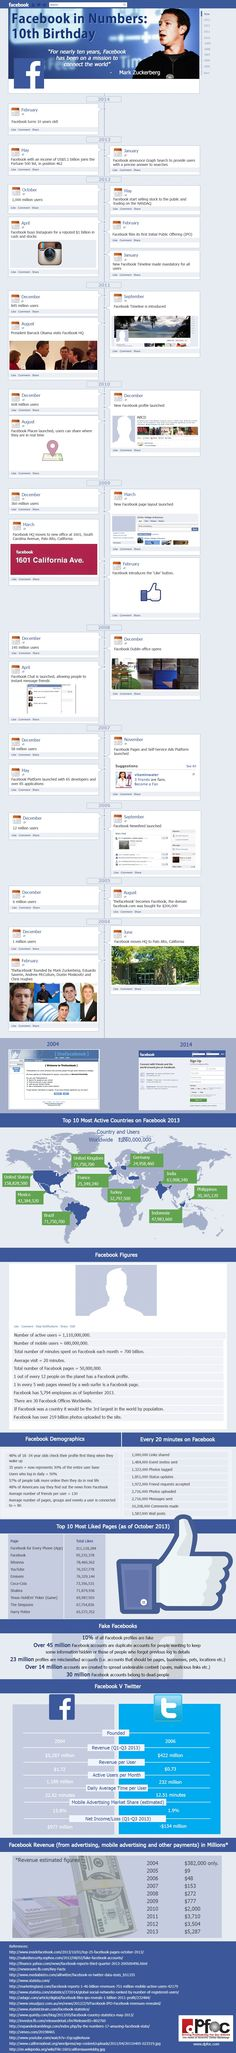 Infographic: 10 years of Facebook